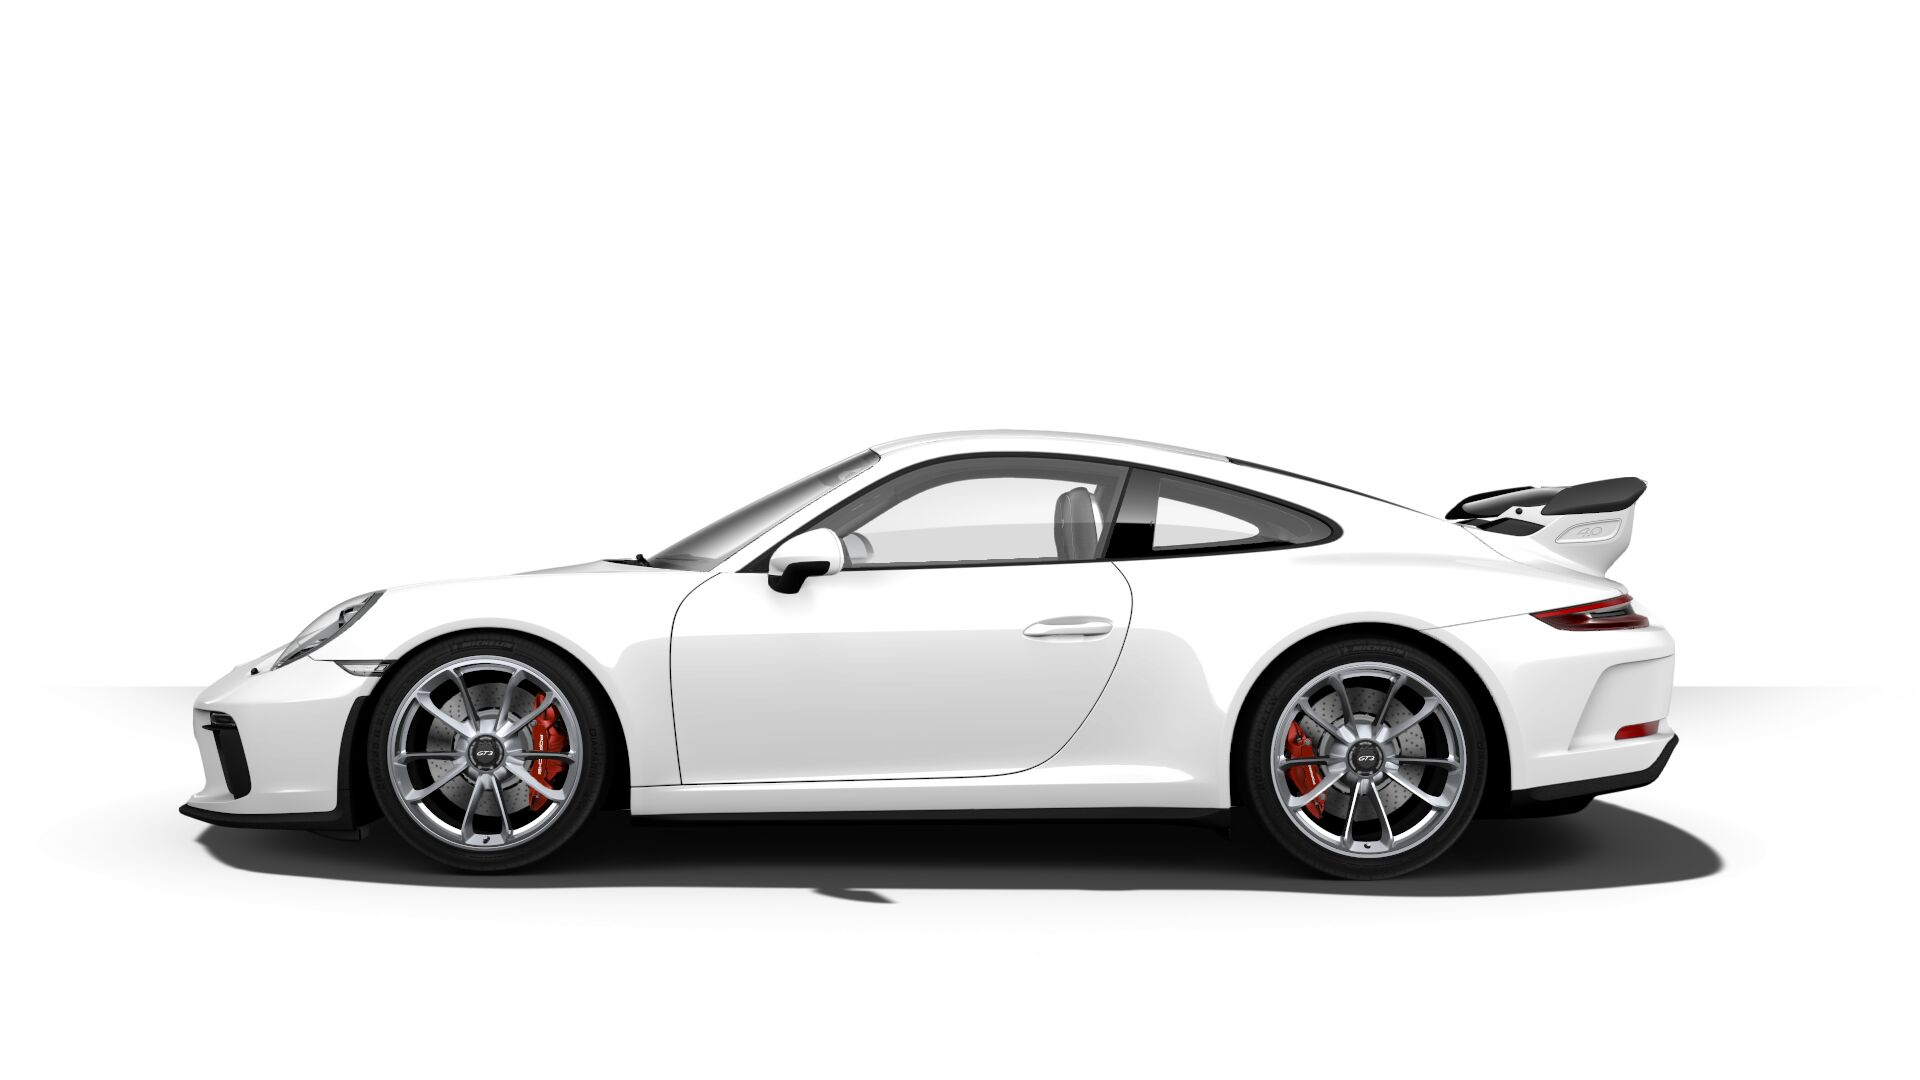 Price and Availability of the Porsche 911 GT3 2018